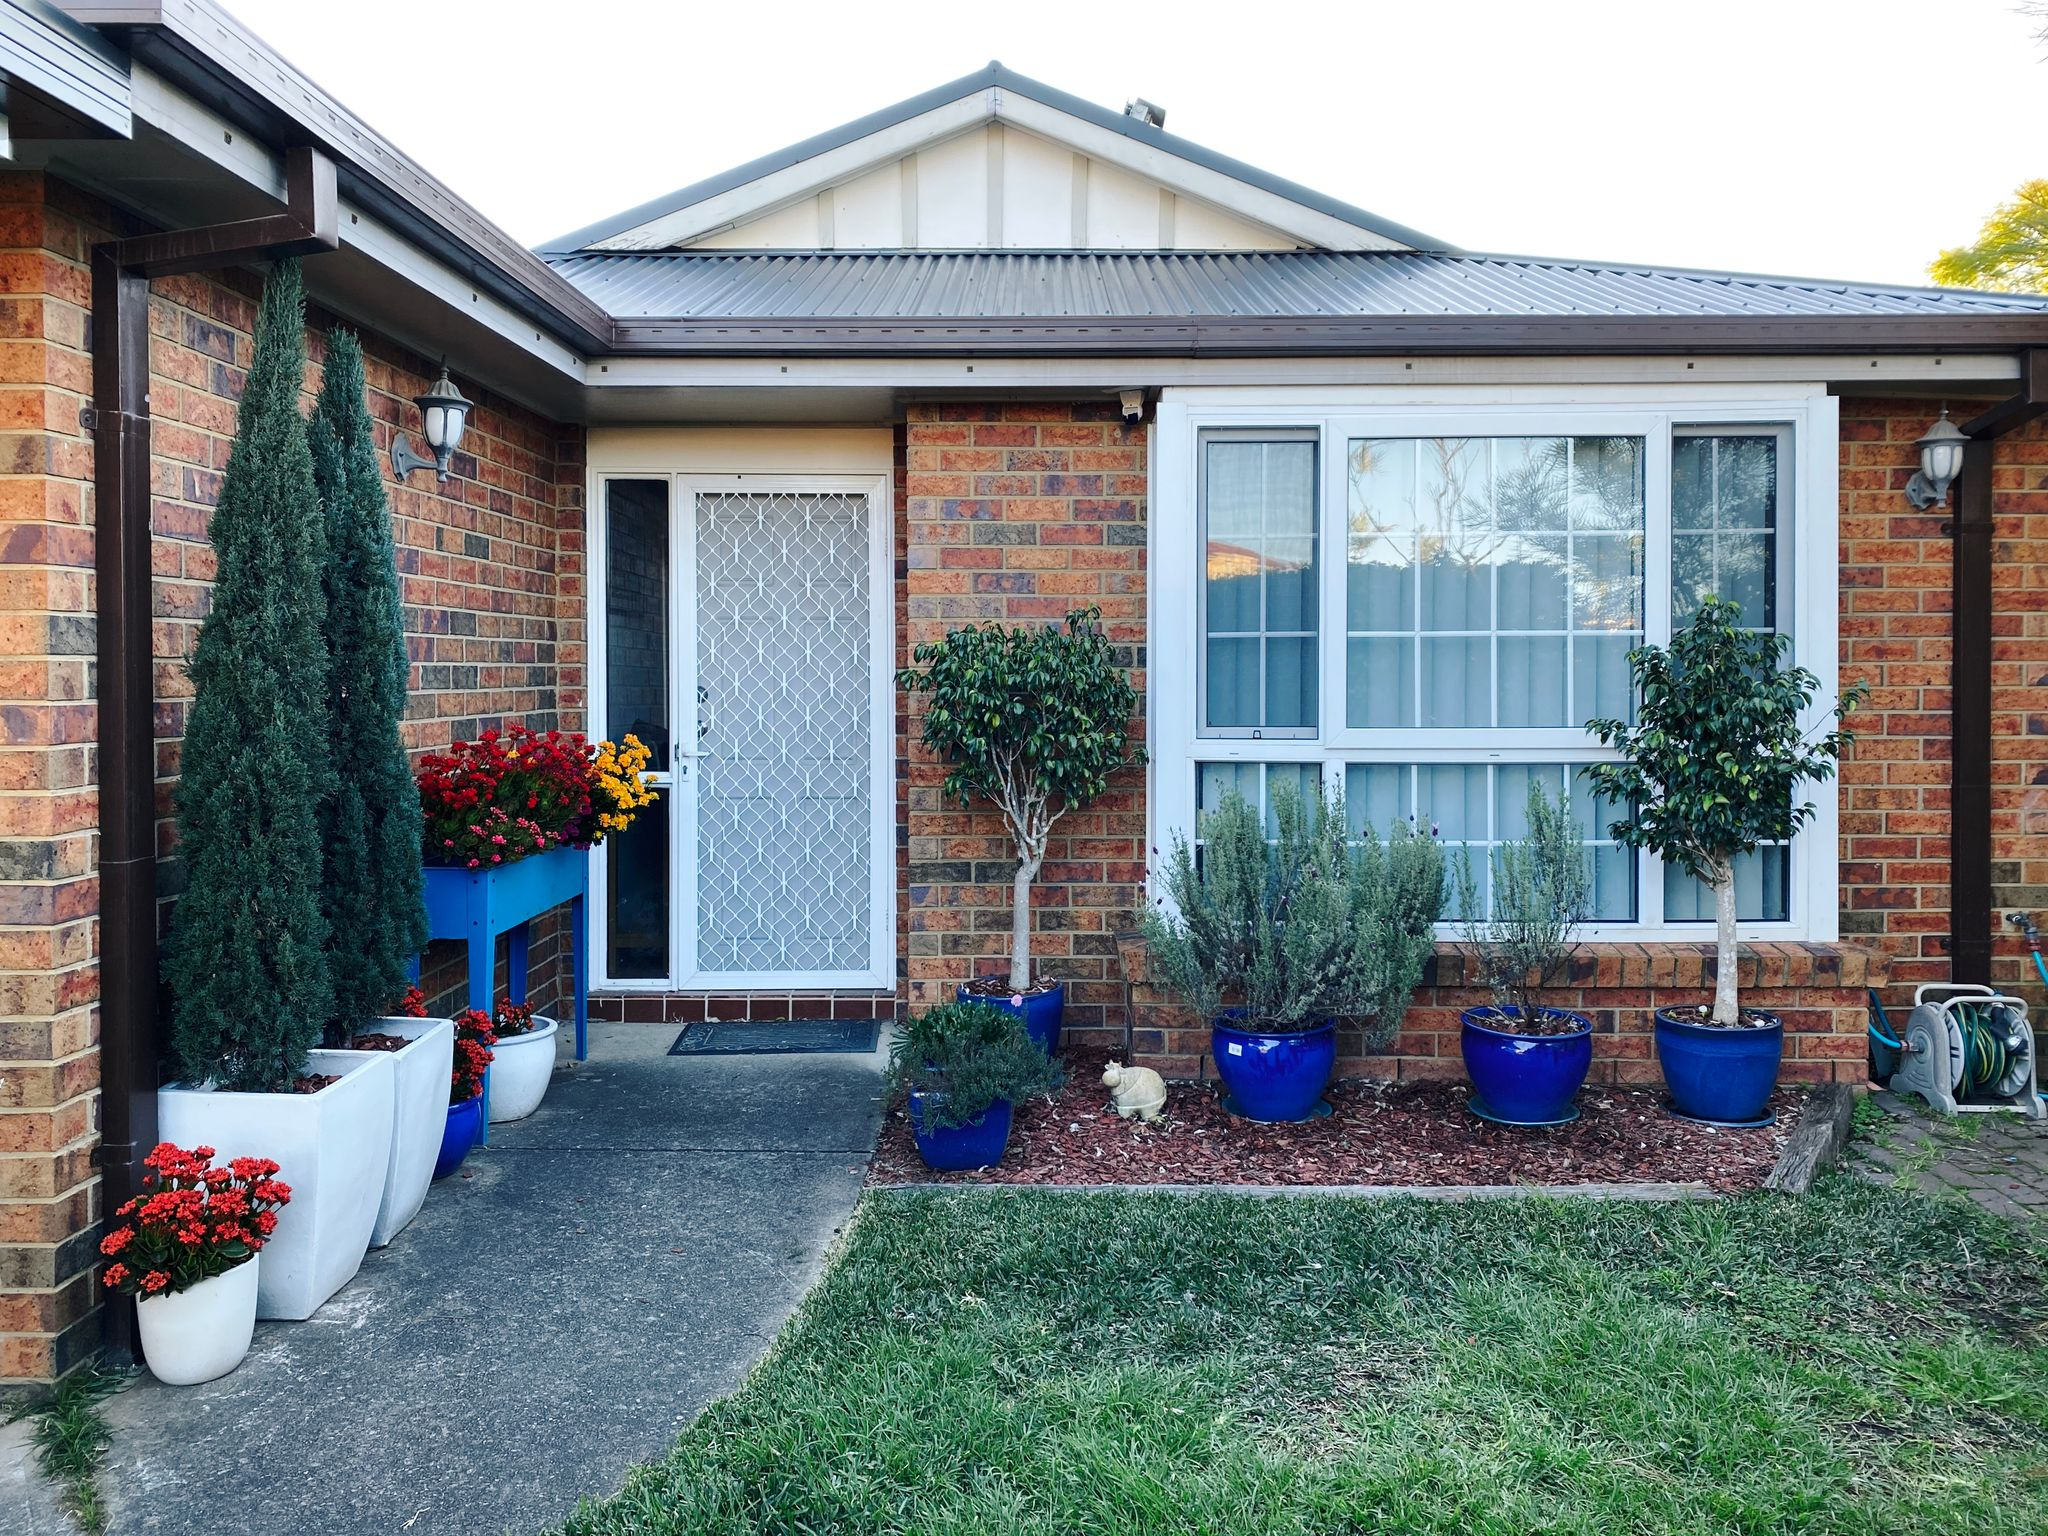 A photo taken of the front of our house. A large bay window sits to the right of the front door, with two trees and two lavender plants in blue pots in front of the window. Leading to the front door is a path with a cheerful blue planter box at the left with colourful flowering kalanchoes, with more in pots on the ground. Two large conifers in tall white pots are also at the left of the path.